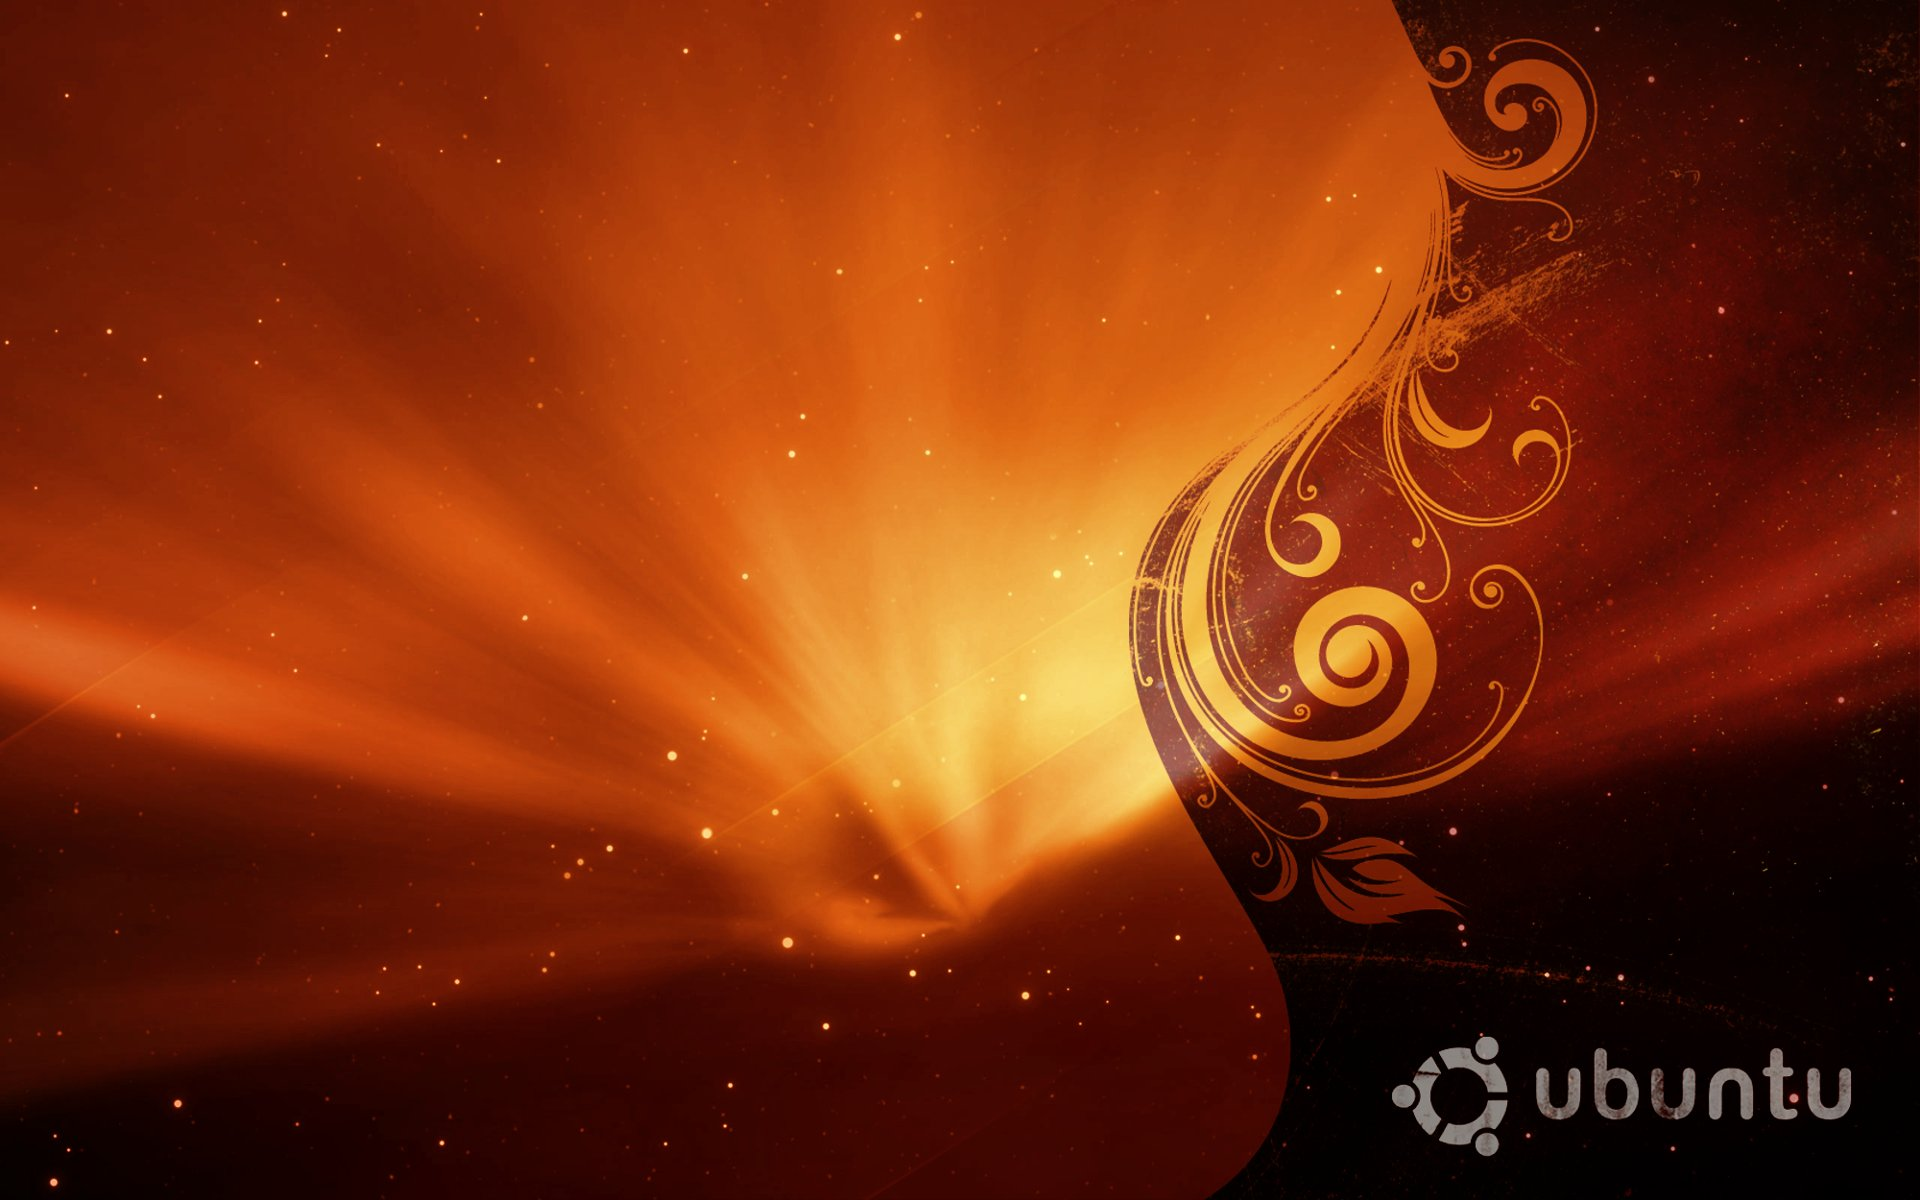 wallpaper ubuntu collection designs incredible design featured 1920x1200